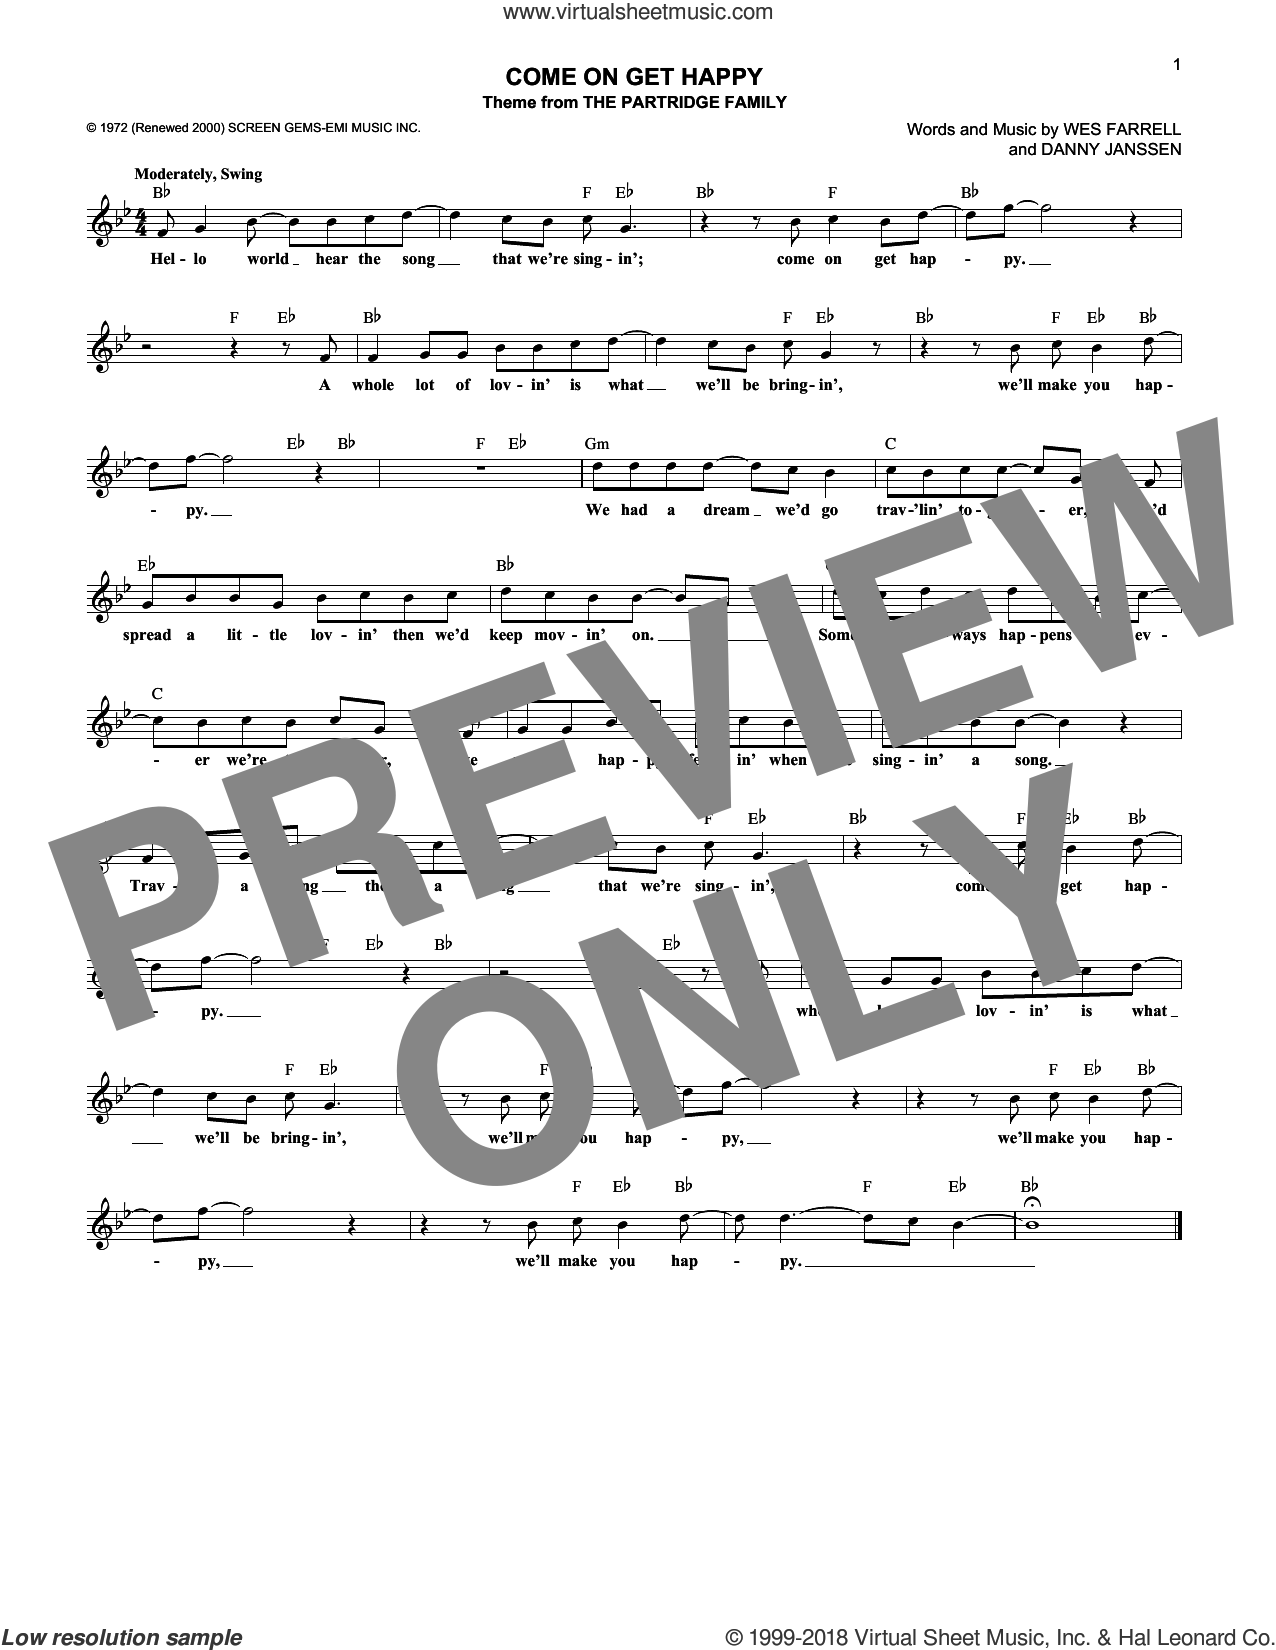 Come On Get Happy sheet music for voice and other instruments (fake book) by The Partridge Family, Danny Janssen and Wes Farrell, intermediate skill level